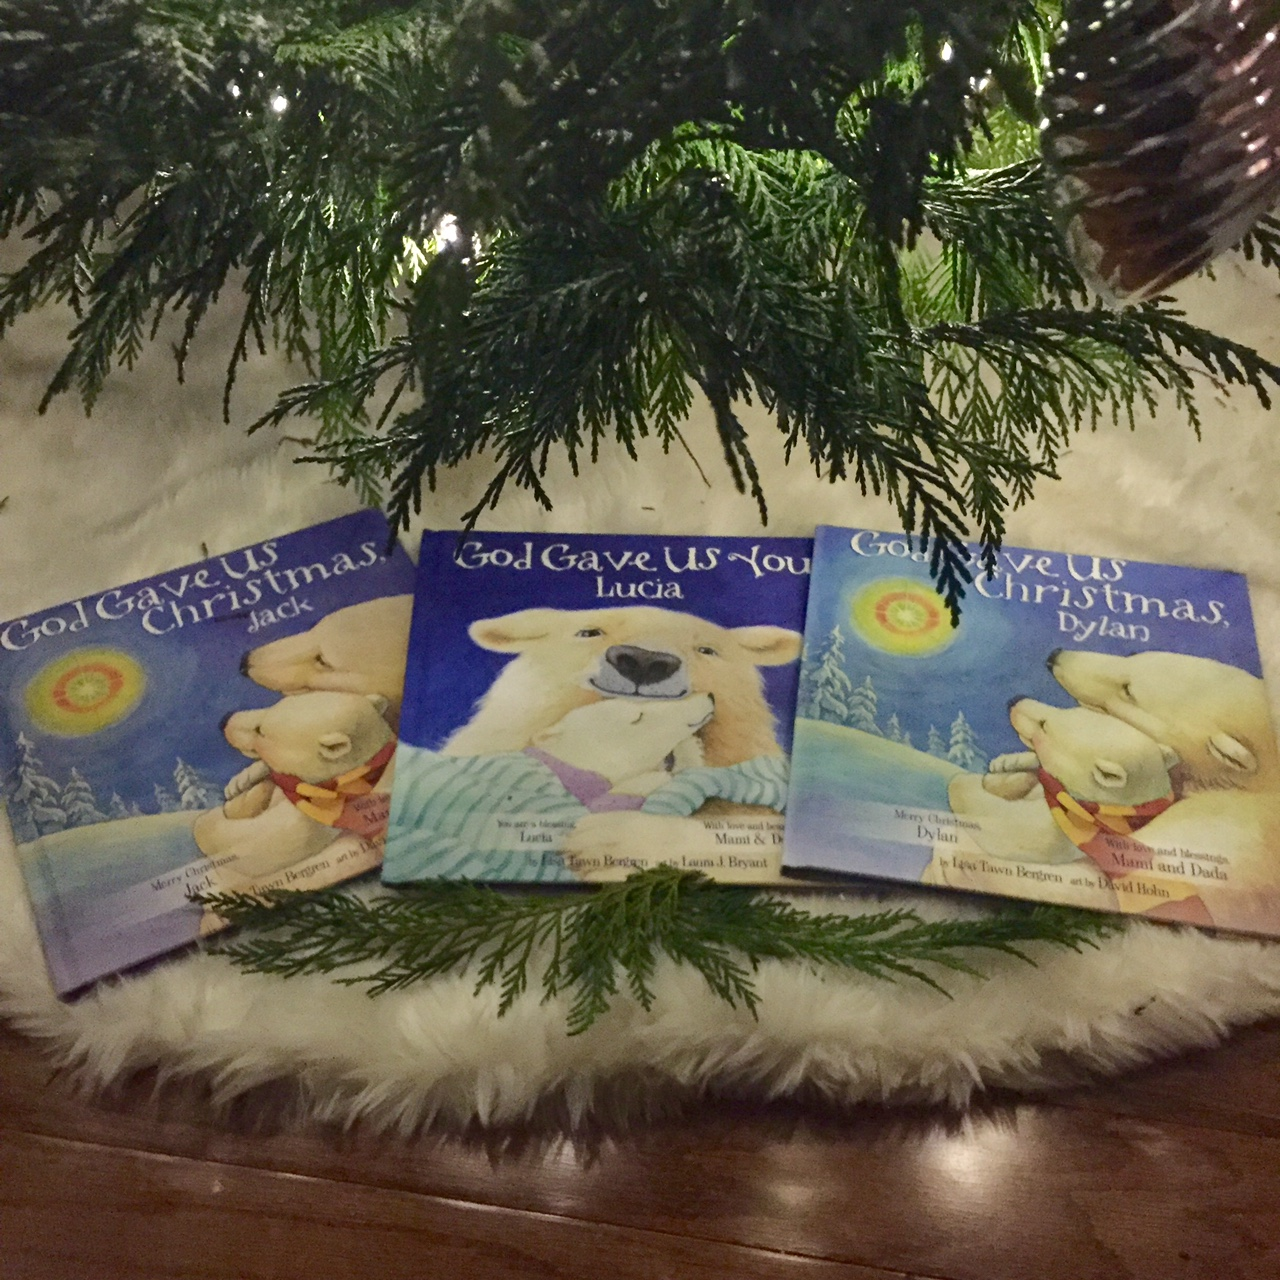 this holiday season lisa tawn bergrens beloved childrens books god gave us you and god gave us christmas can be transformed into personalized keepsakes